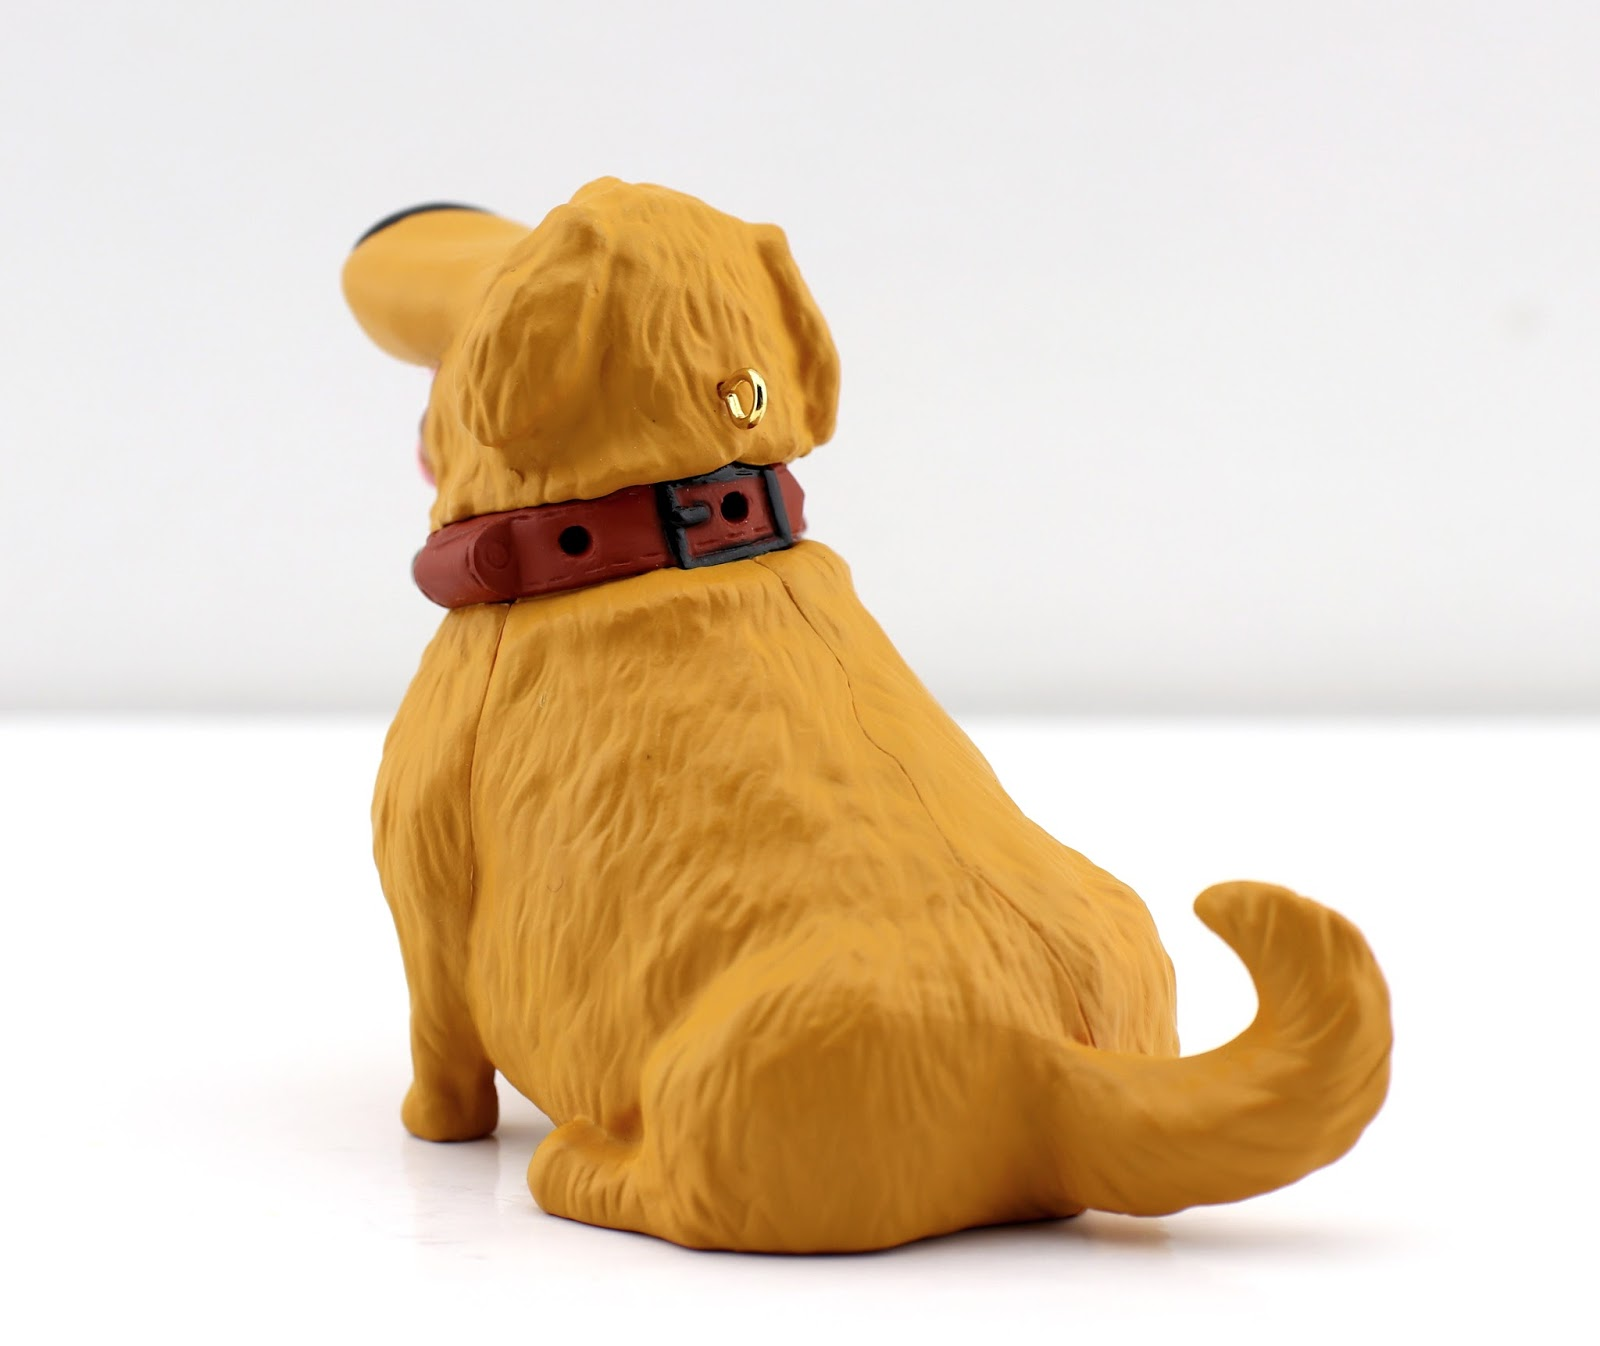 Up Hallmark 2017 Dug Keepsake Ornament (Lights & Sounds)